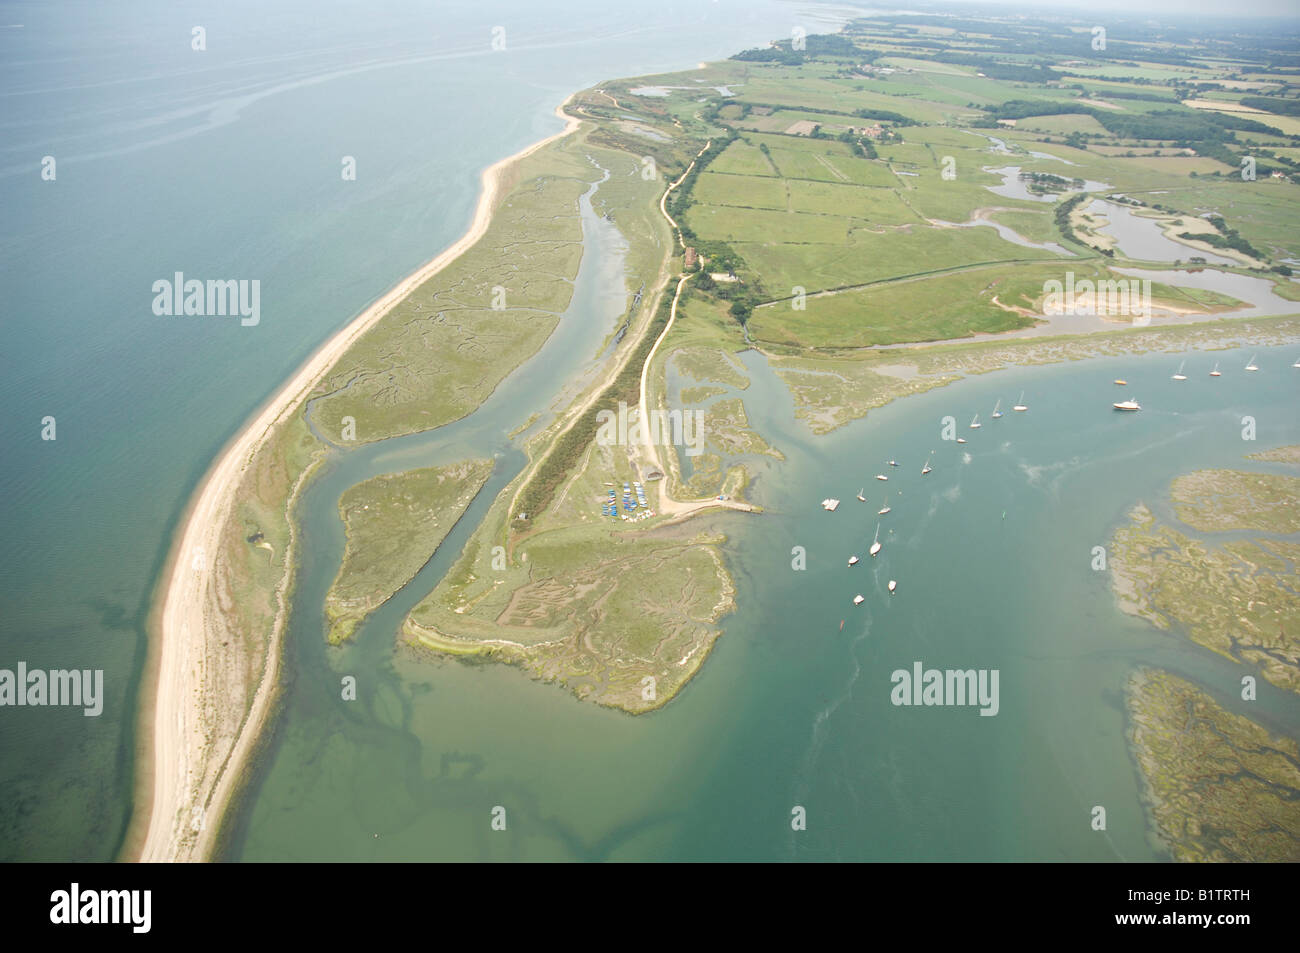 Aerial View of Needs Ore at the mouth of the Beaulieu River, where it meets the Solent in Hampshire, England. - Stock Image